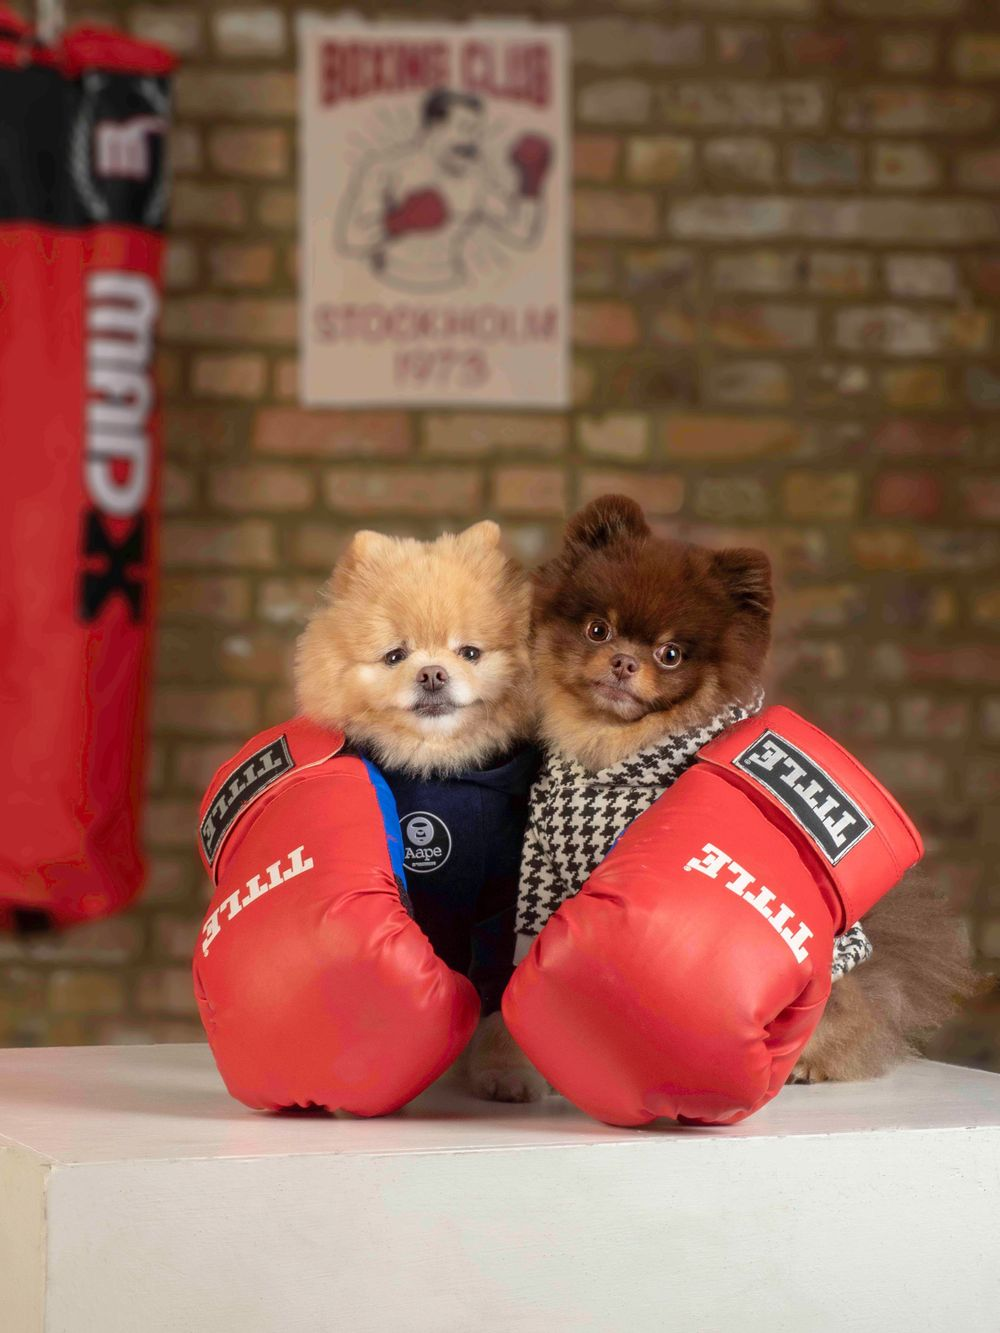 Cedric and Kobe the Pomeranians in 'He is Your Brother'